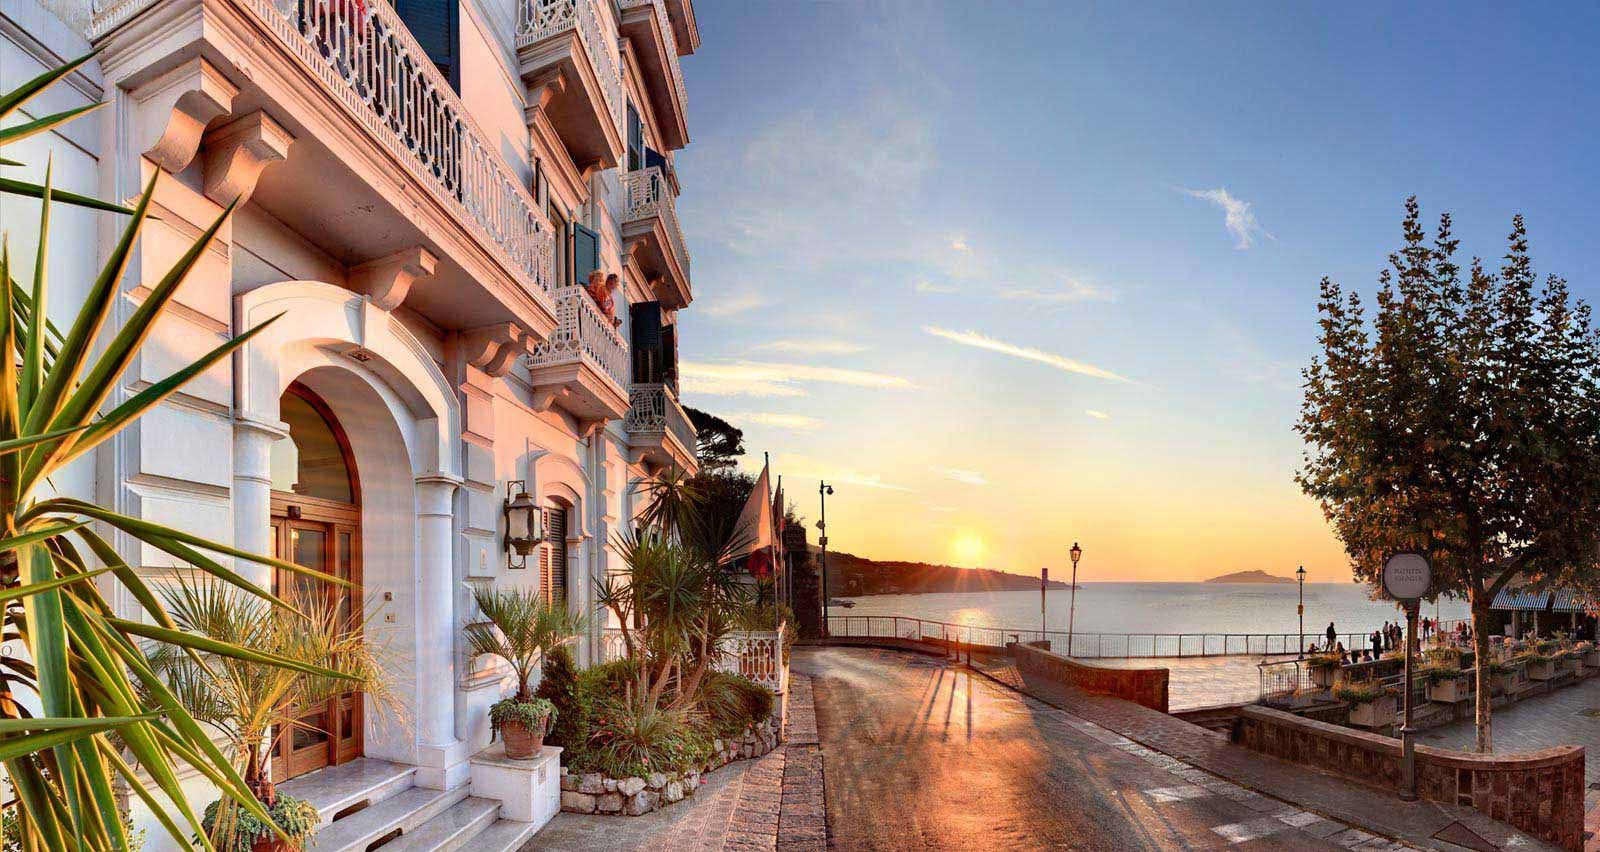 Hotel sorrento hotel mediterraneo official site 4 star - 4 star hotels in lisbon with swimming pool ...